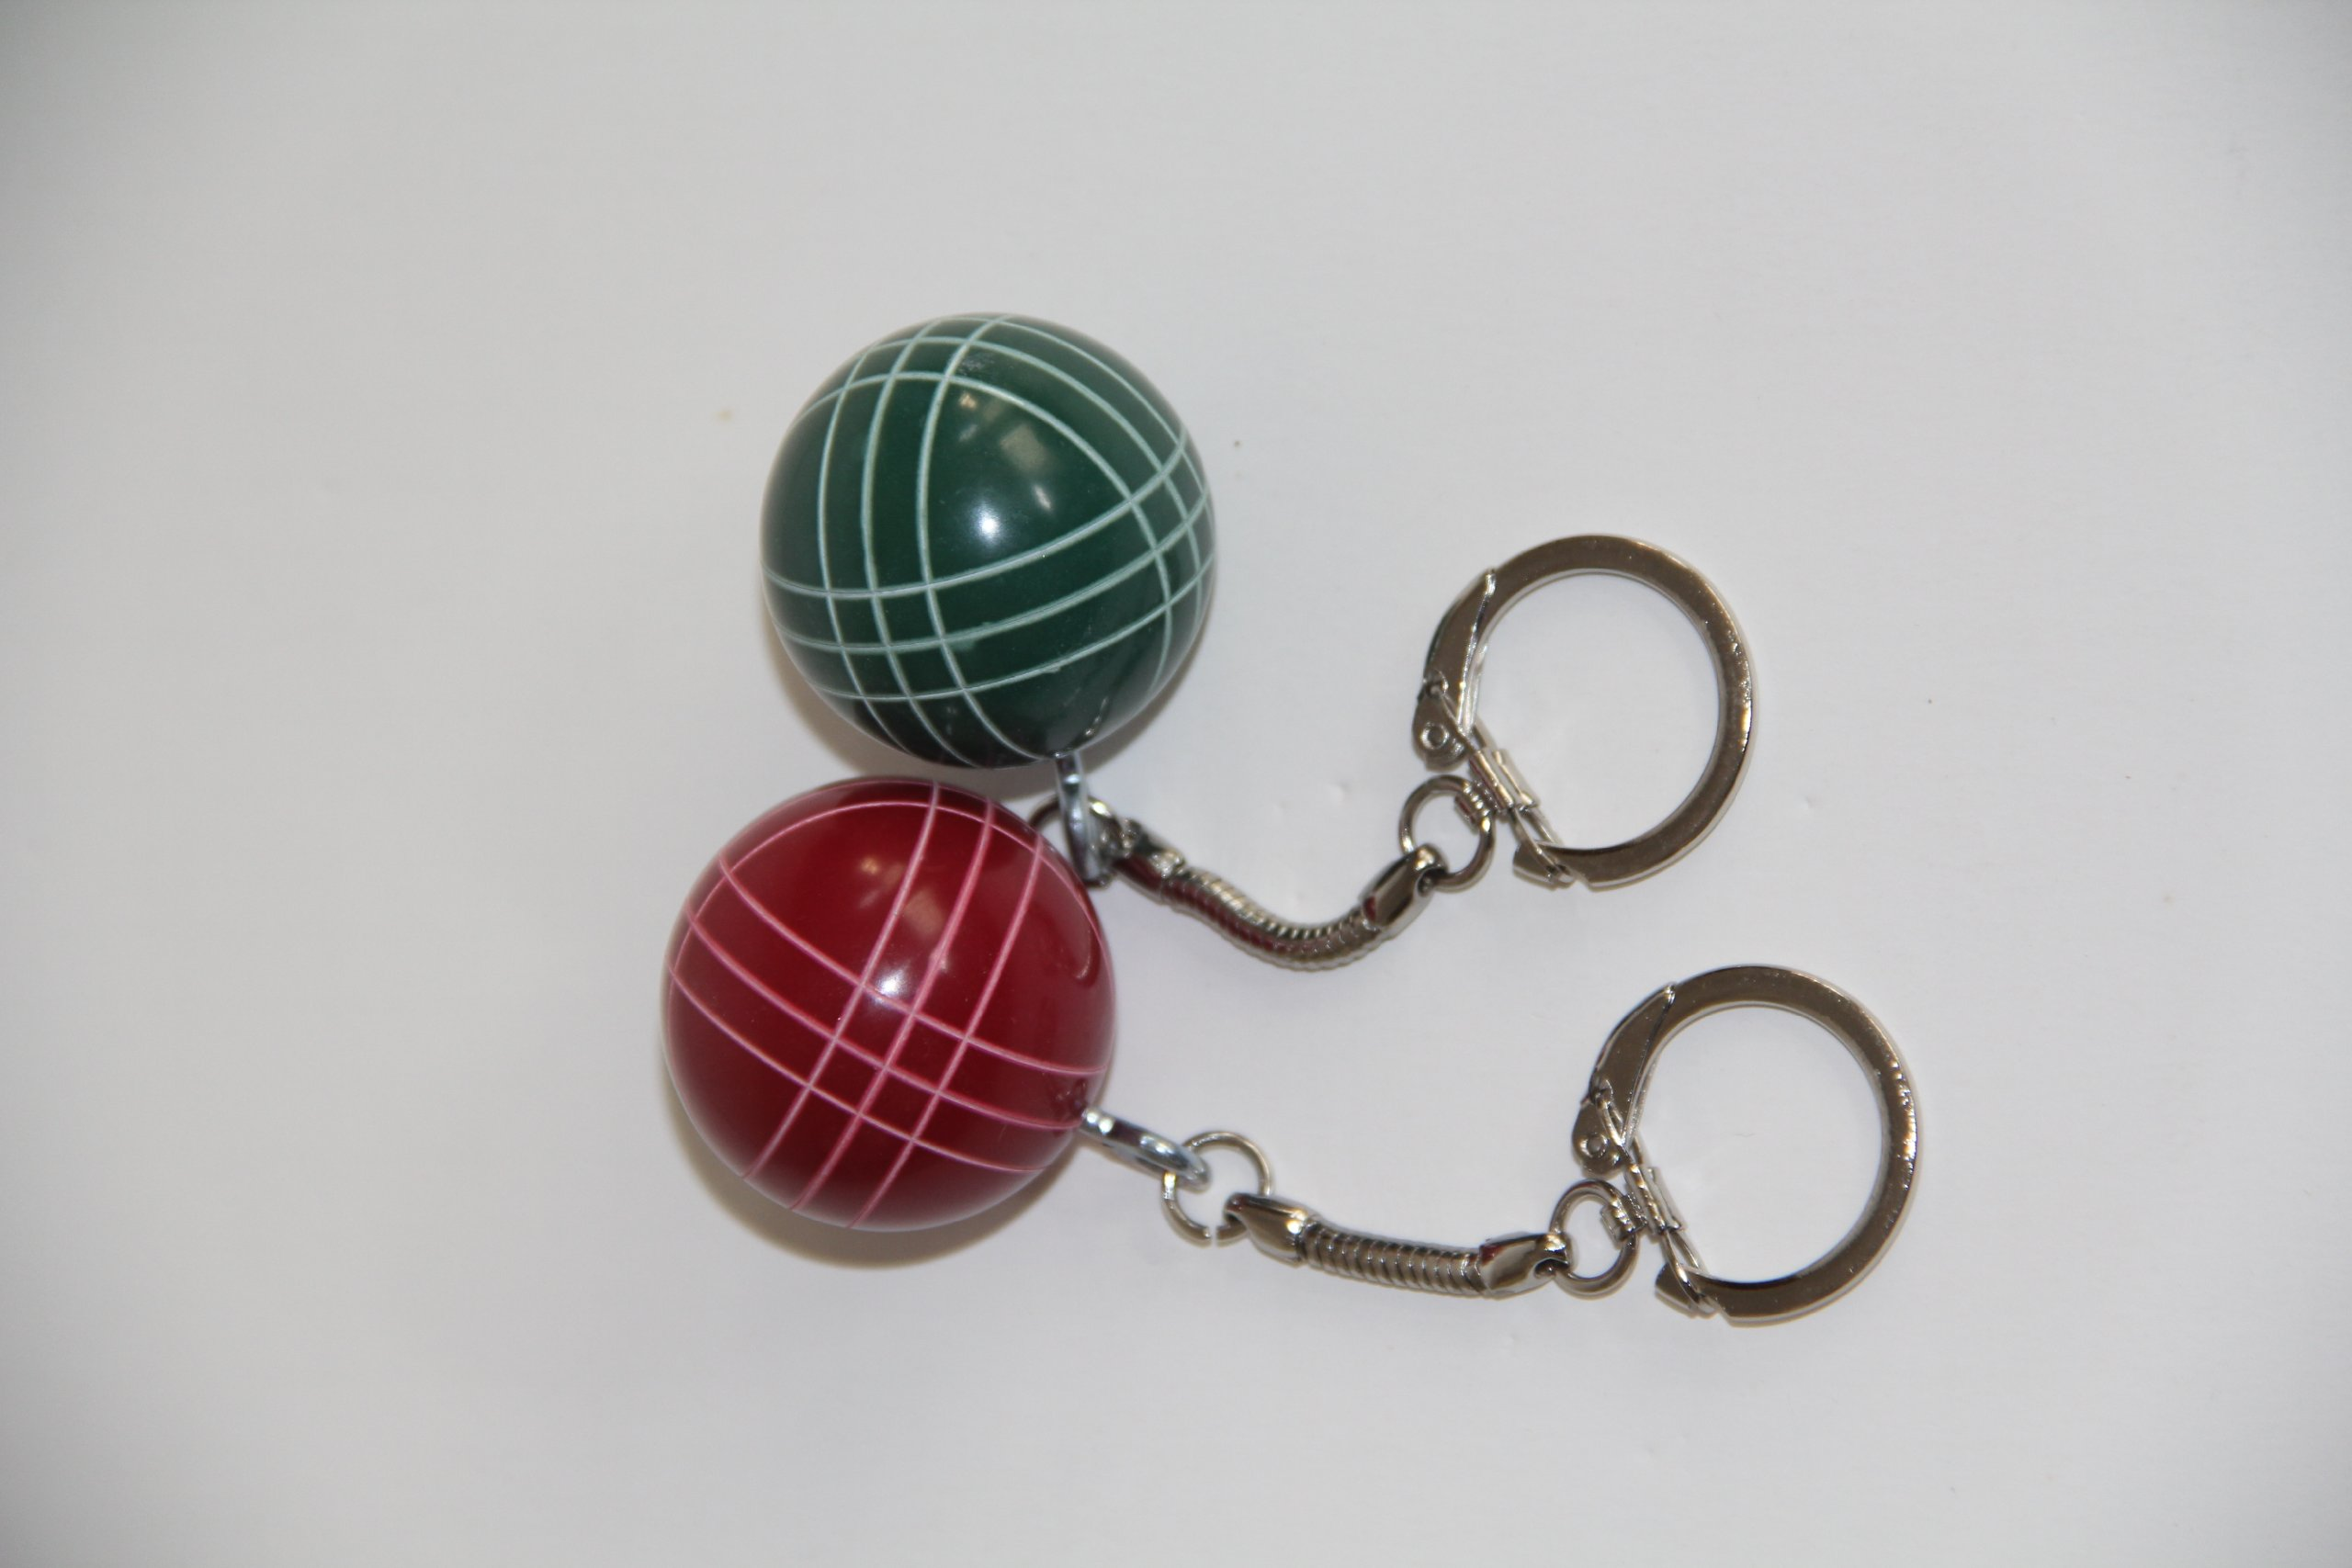 Bocce Ball Keychain - Combo 2 pack wih 1 red and 1 green